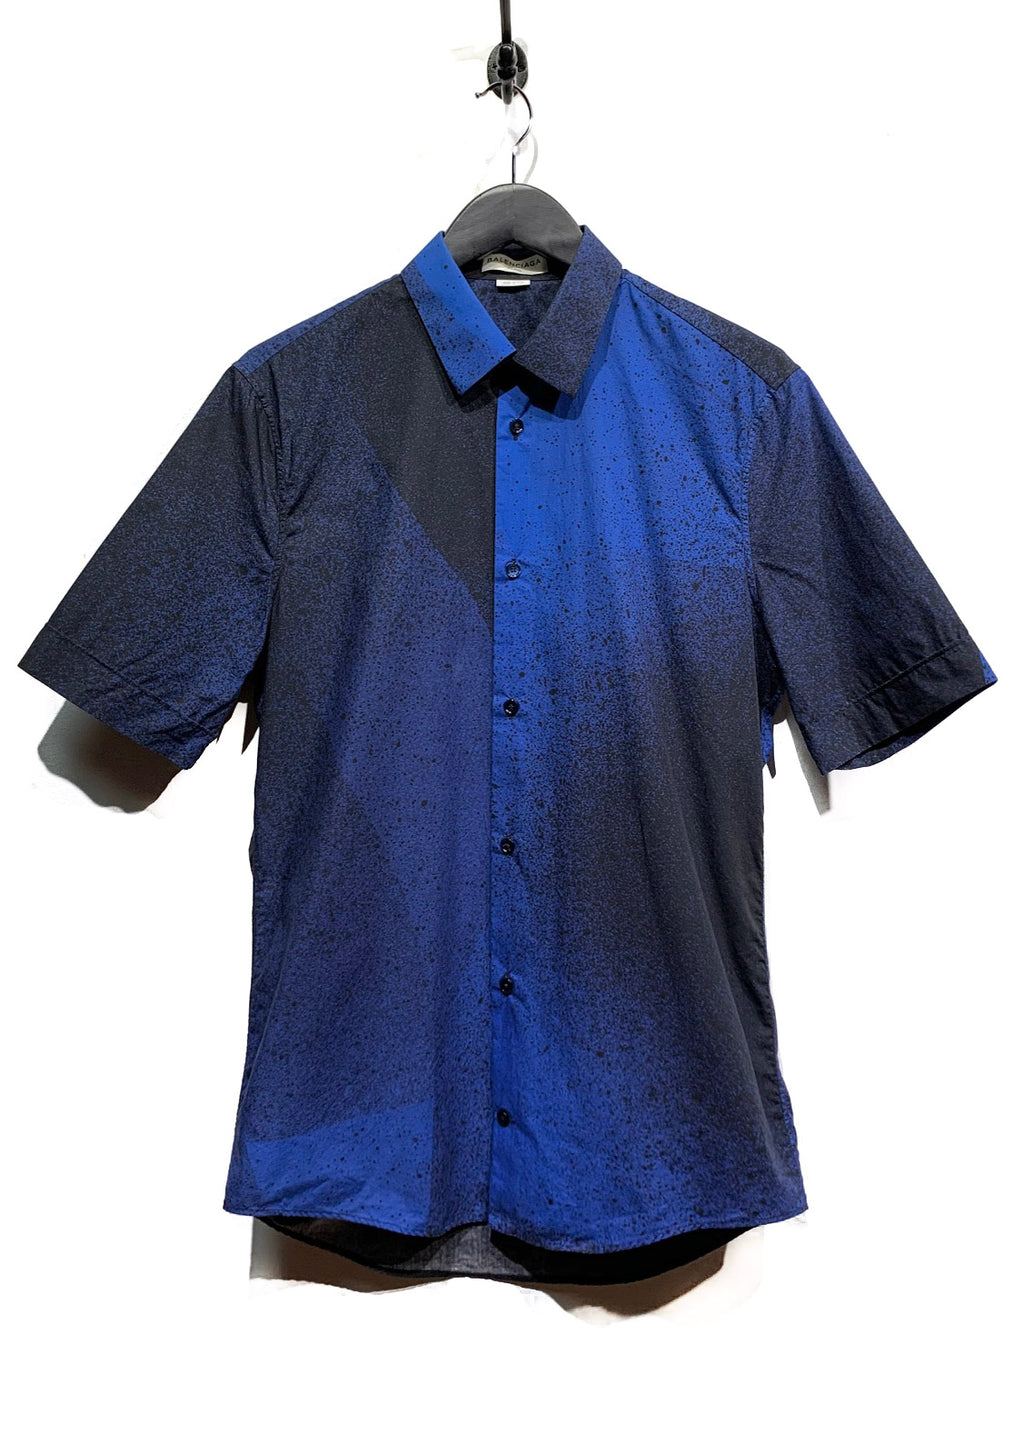 Balenciaga Blue Black Paint Splatter Buttoned Shirt